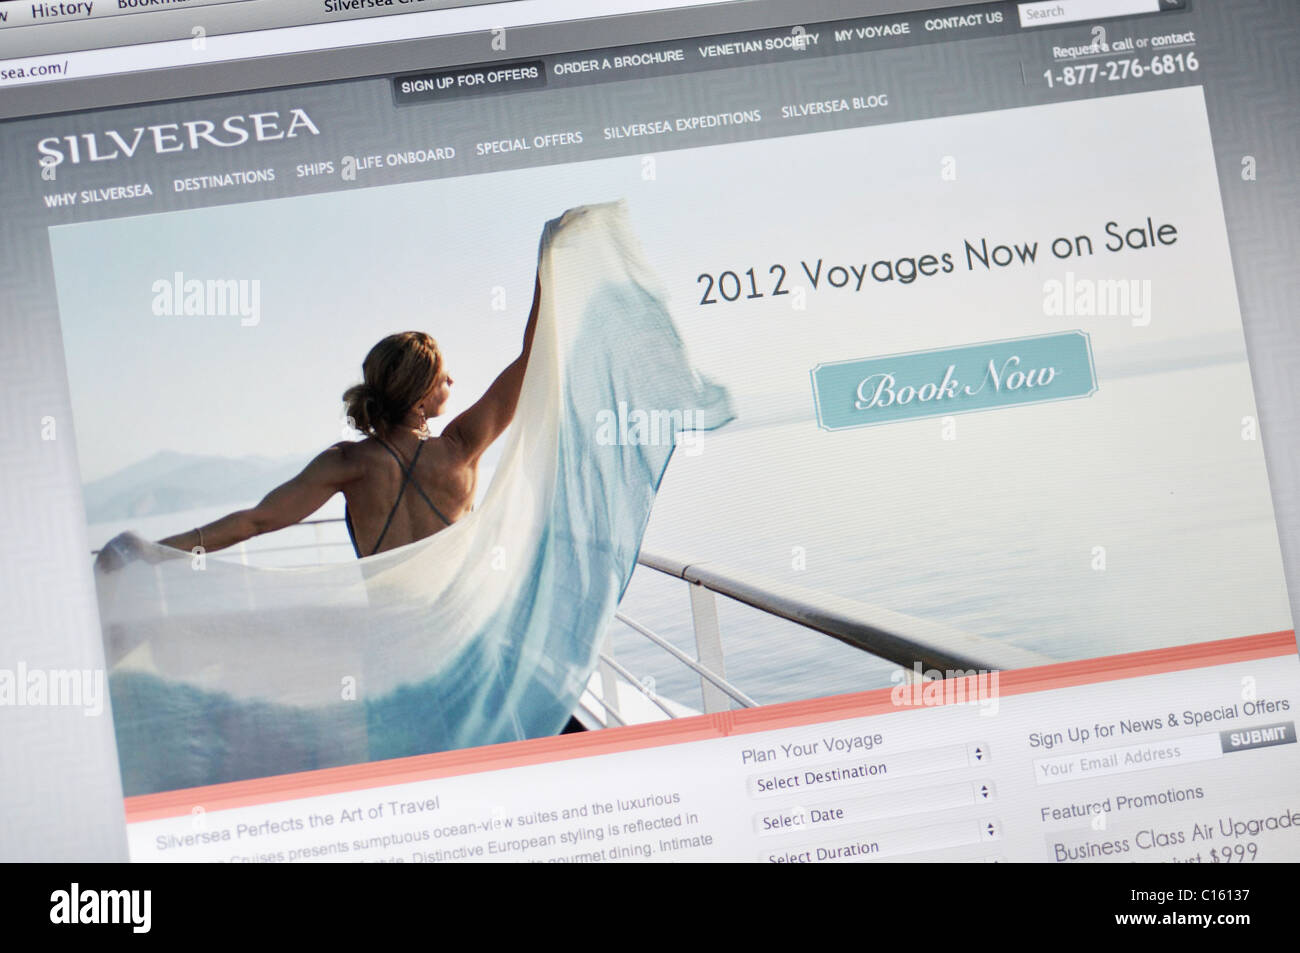 Silversea voyages cruises website - Stock Image